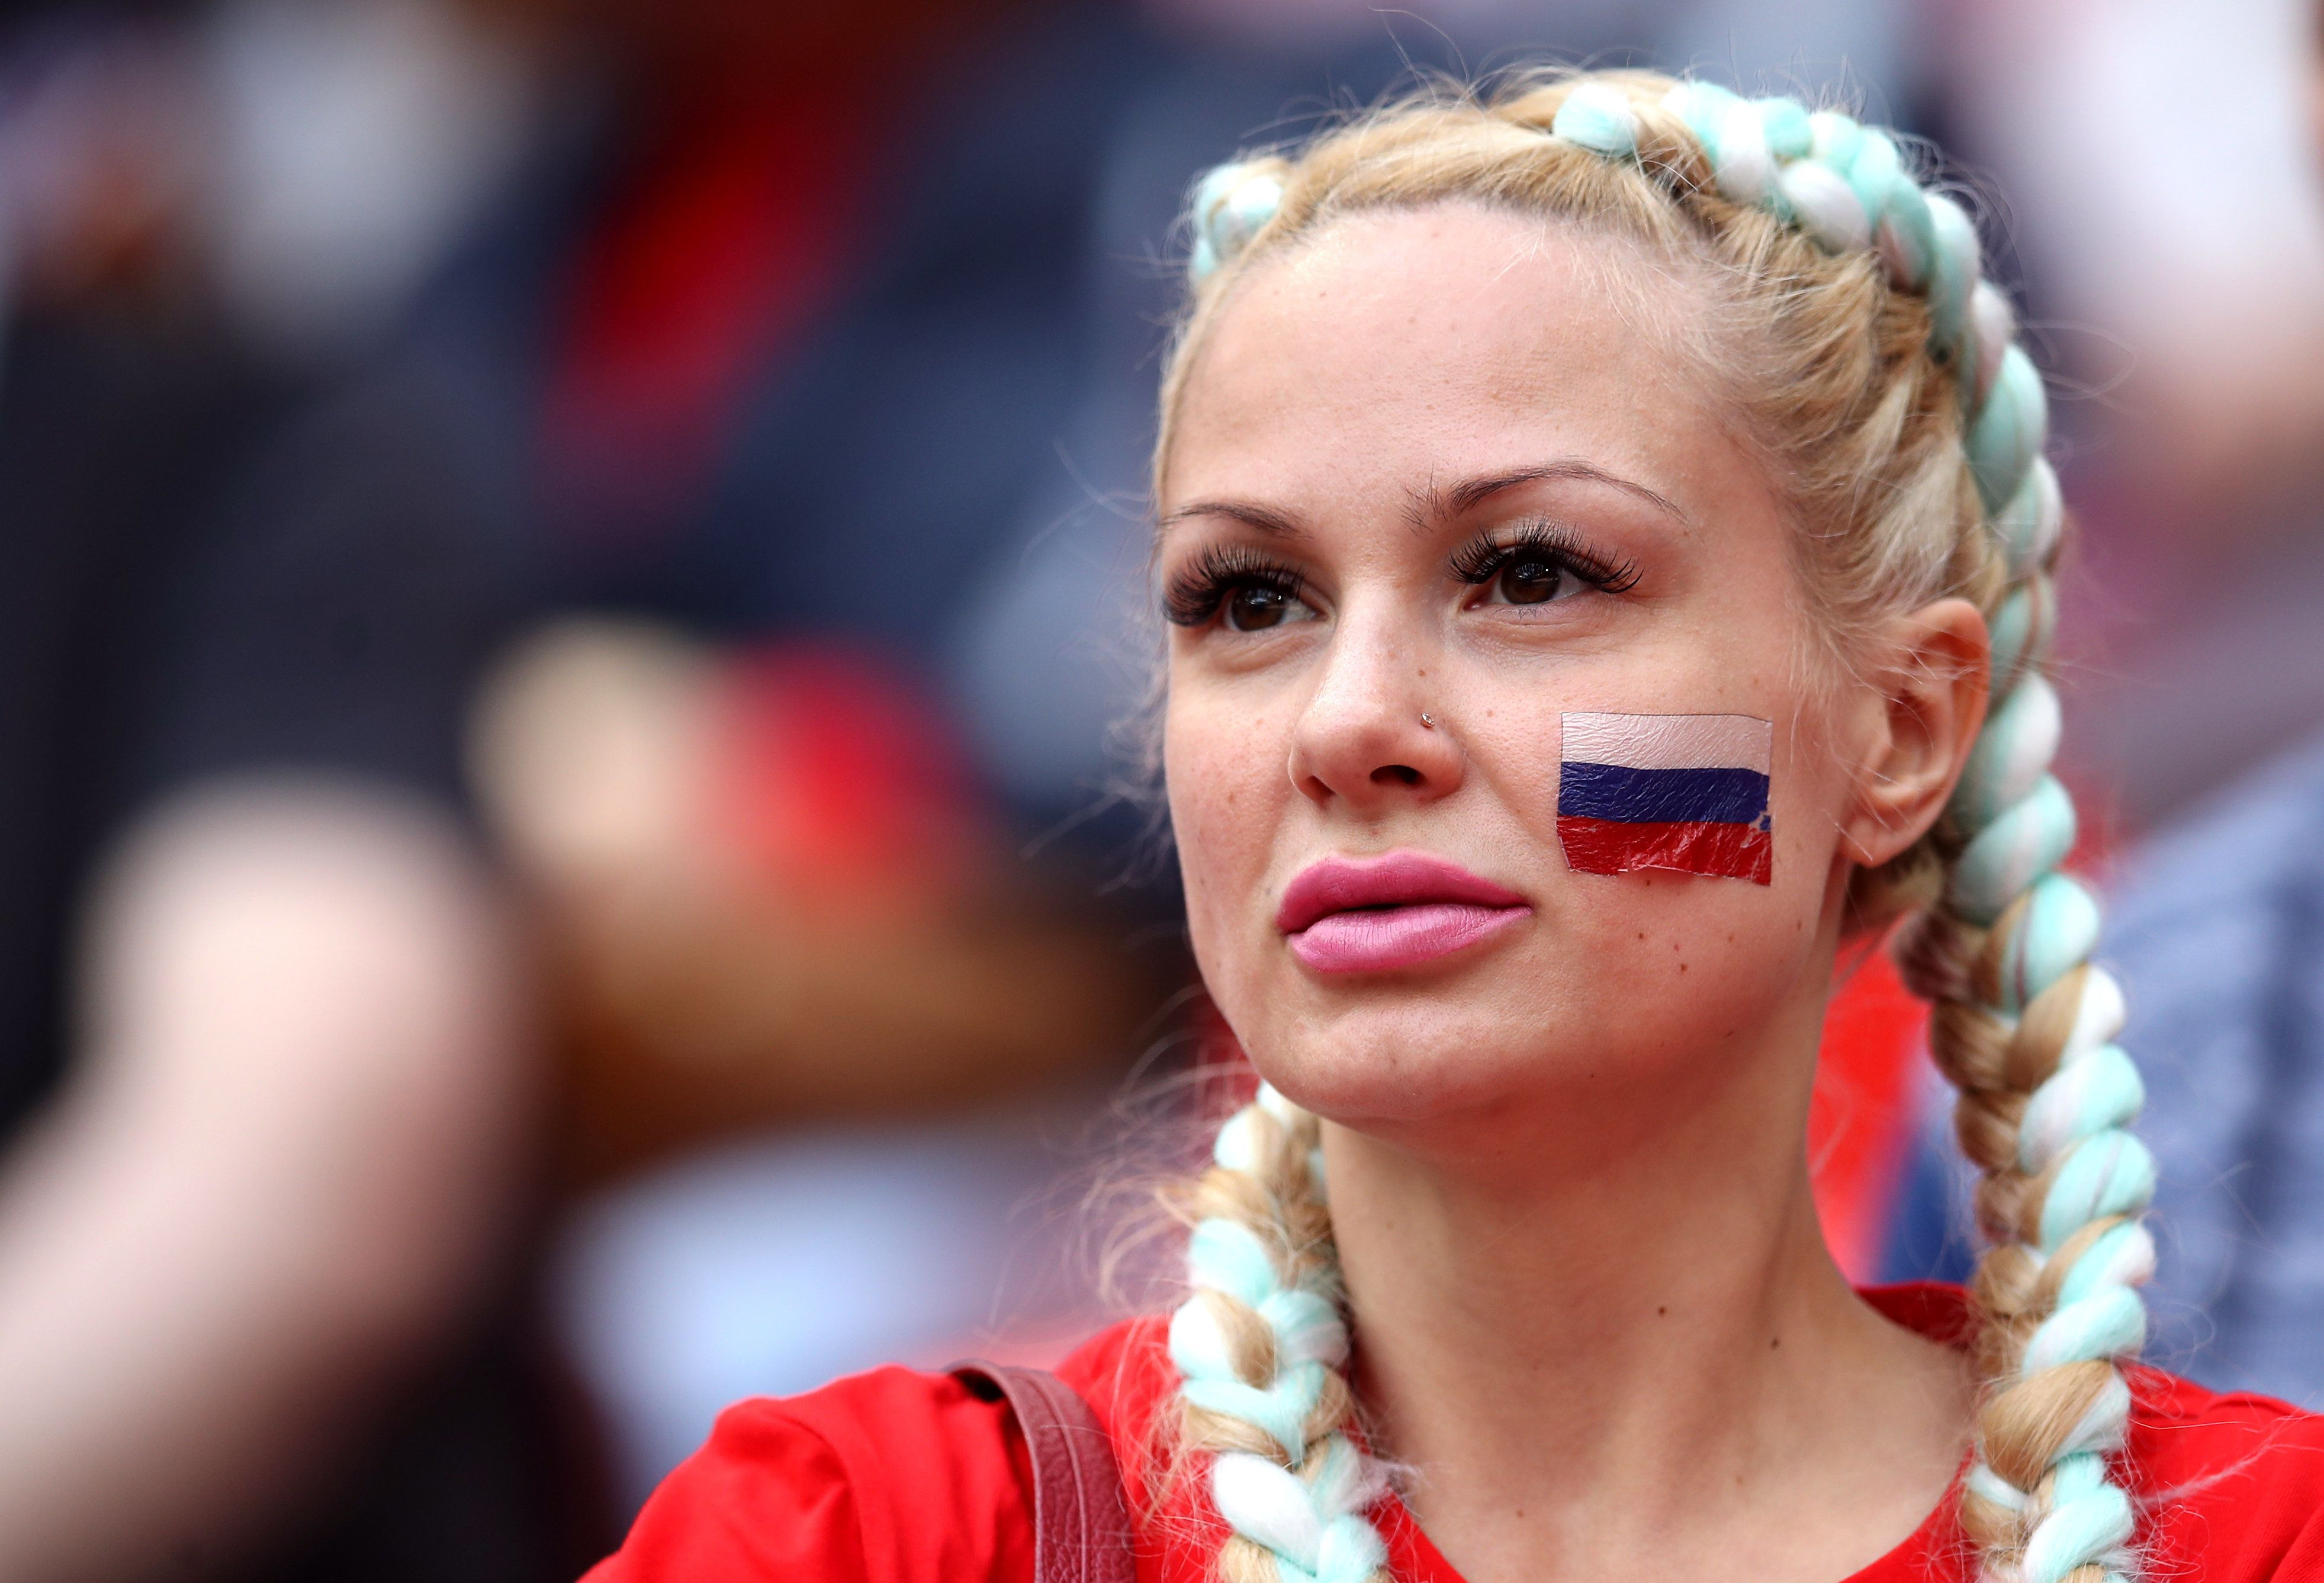 A Russian fan in the stands ahead of a match for the 2018 FIFA World Cup in Moscow.